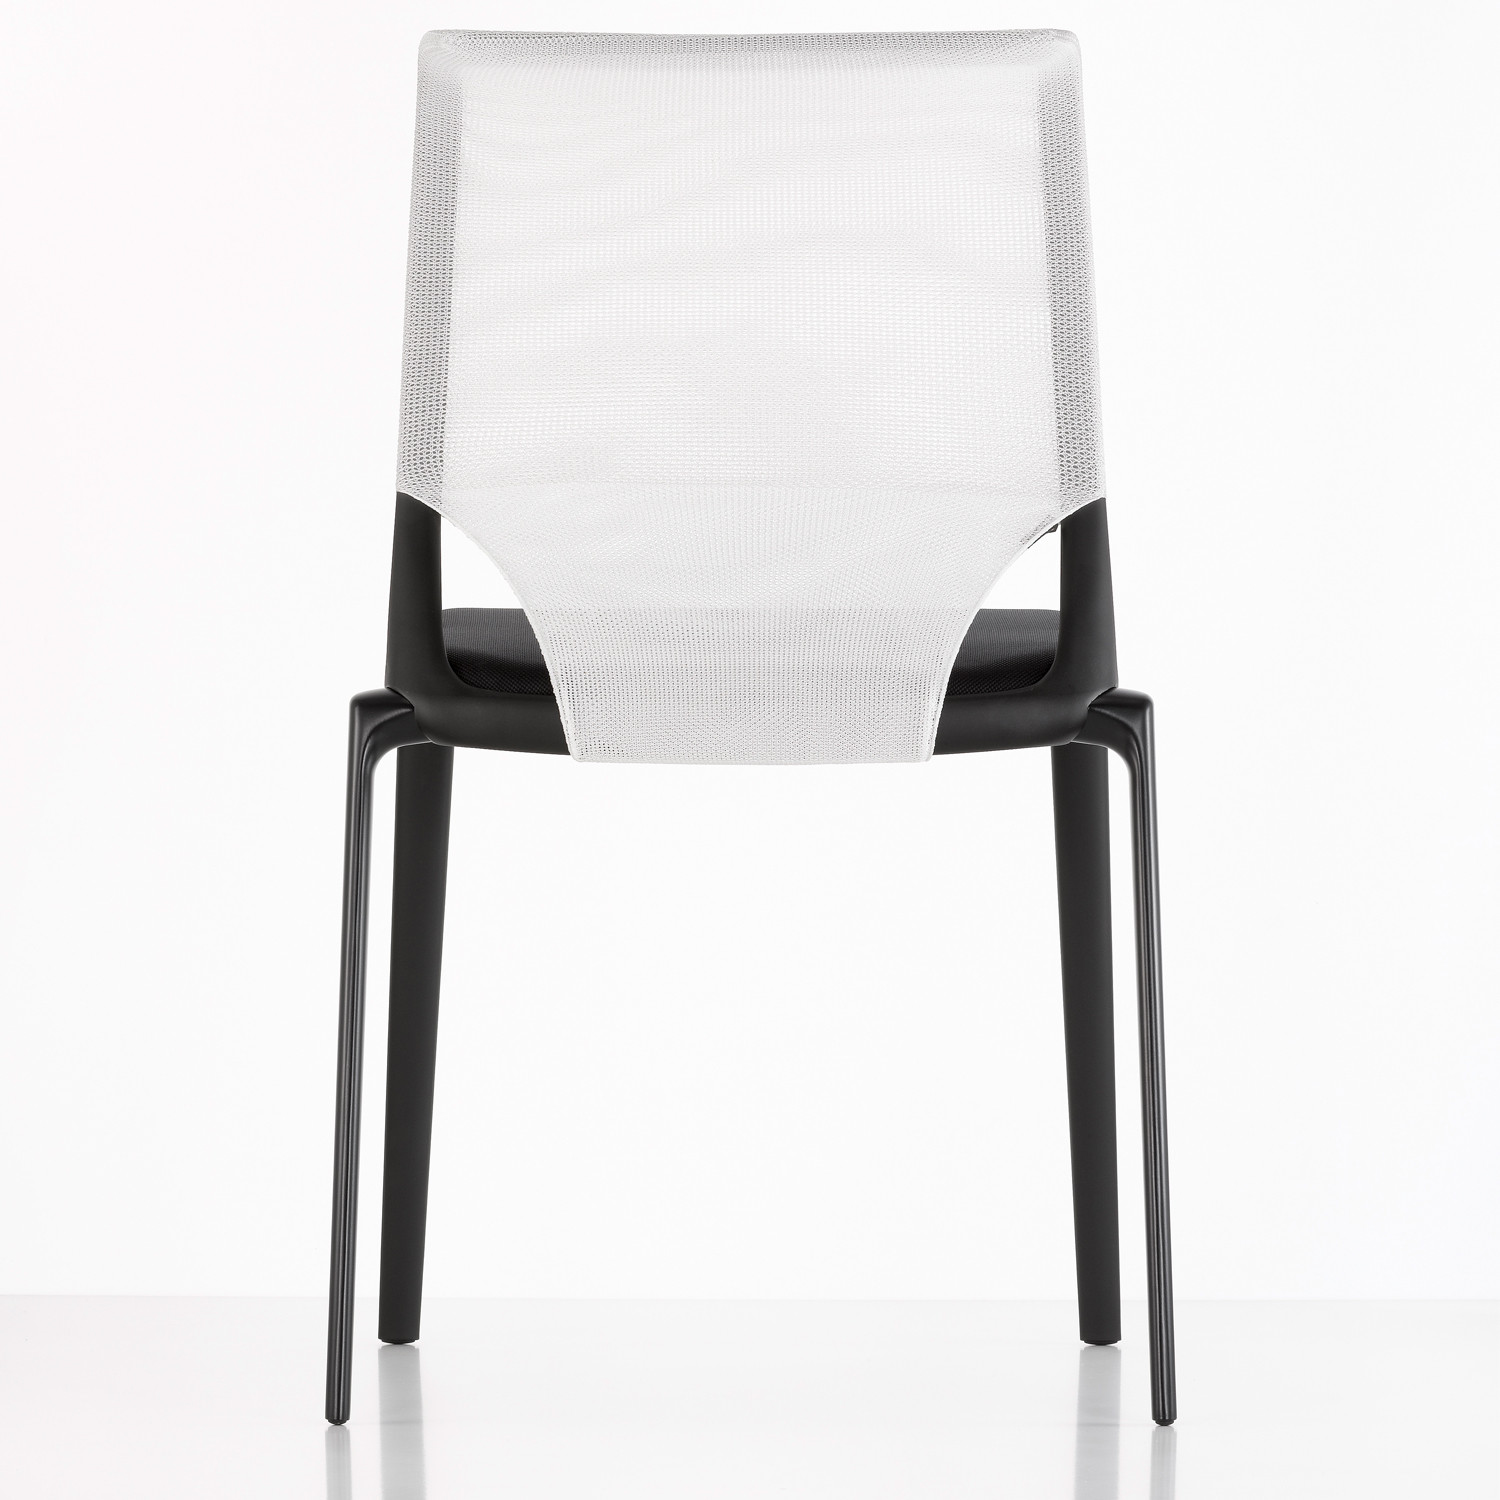 Meda Chair Rear View